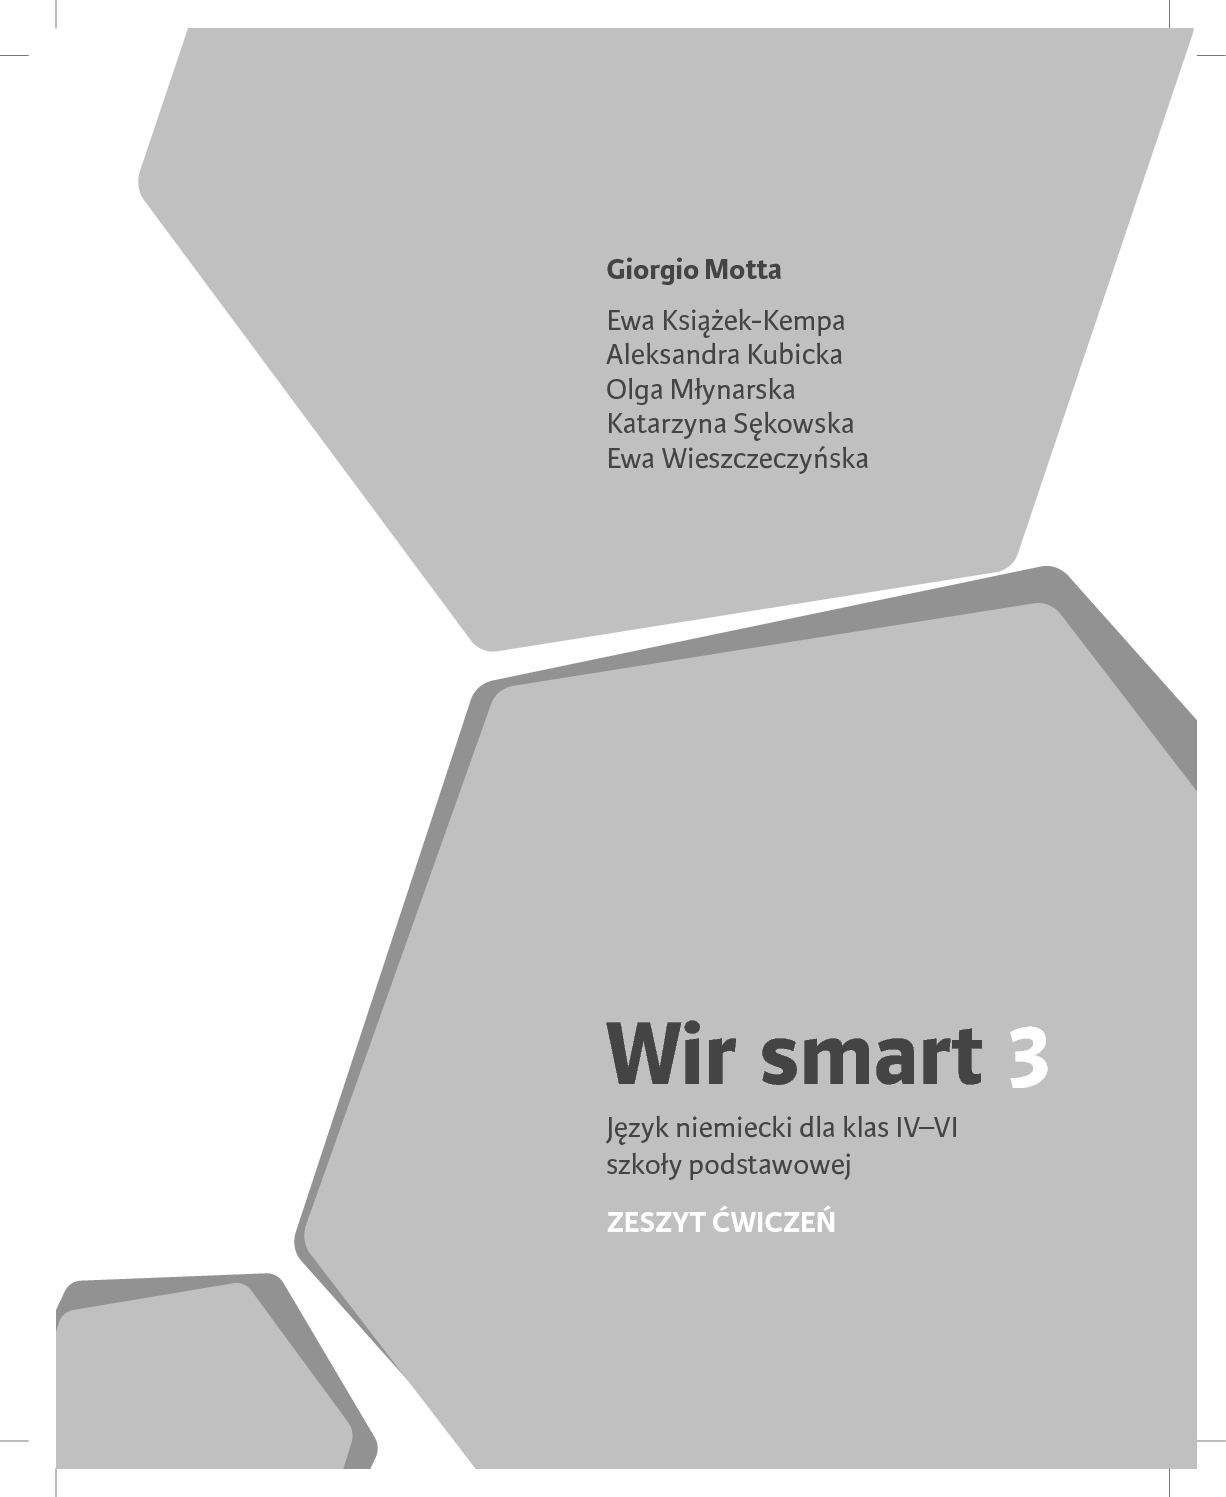 Wir smart 3 wiczenia dotacyjne calameo downloader page 1 ccuart Images